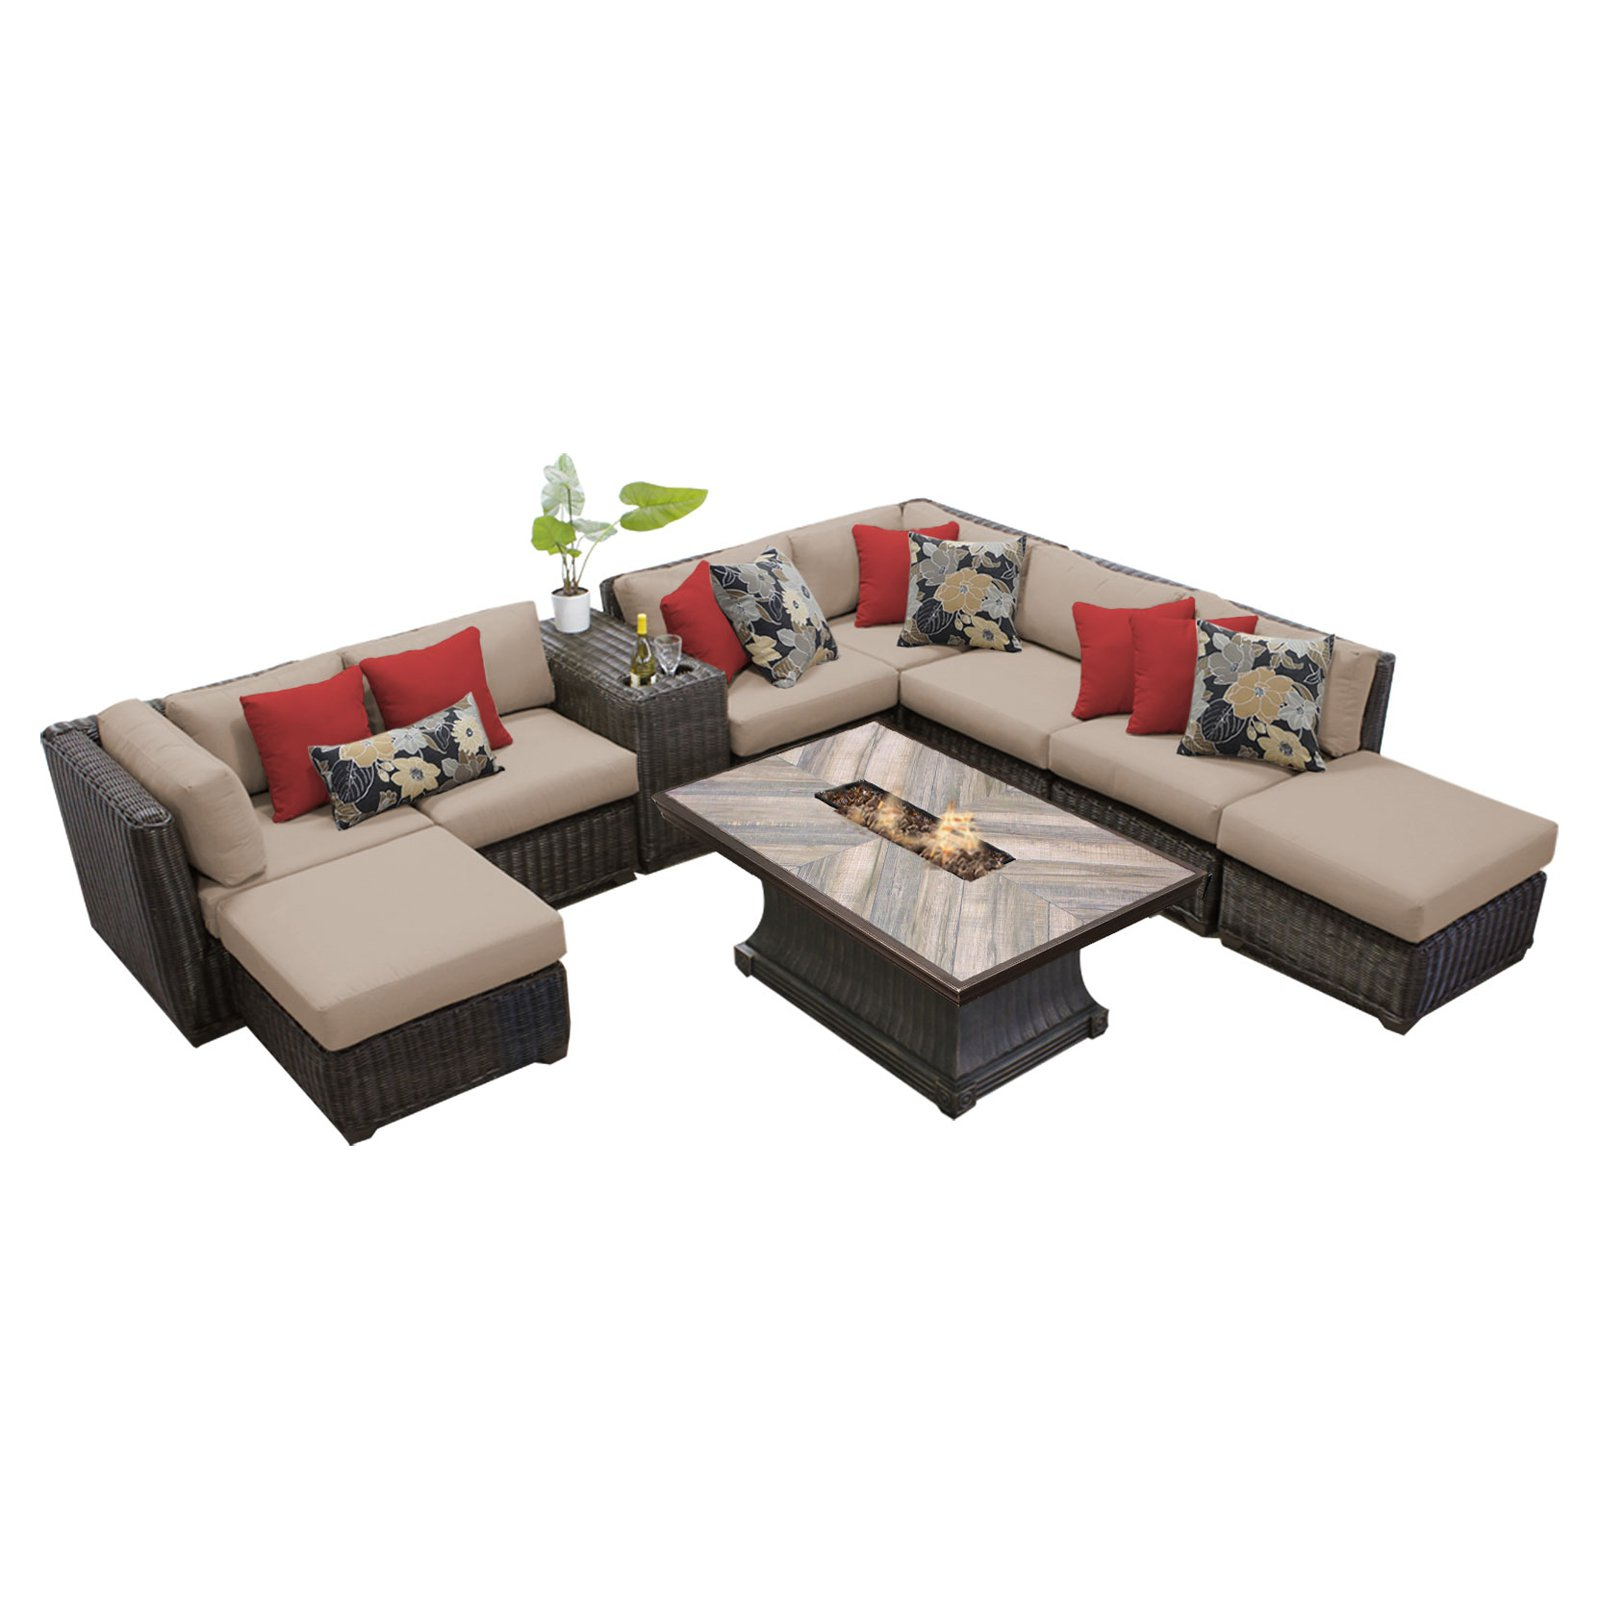 Jamarion 4 Piece Sectionals With Sunbrella Cushions In Newest Brayden Studio Jamarion 4 Piece Sectional With Cushions In (View 2 of 20)